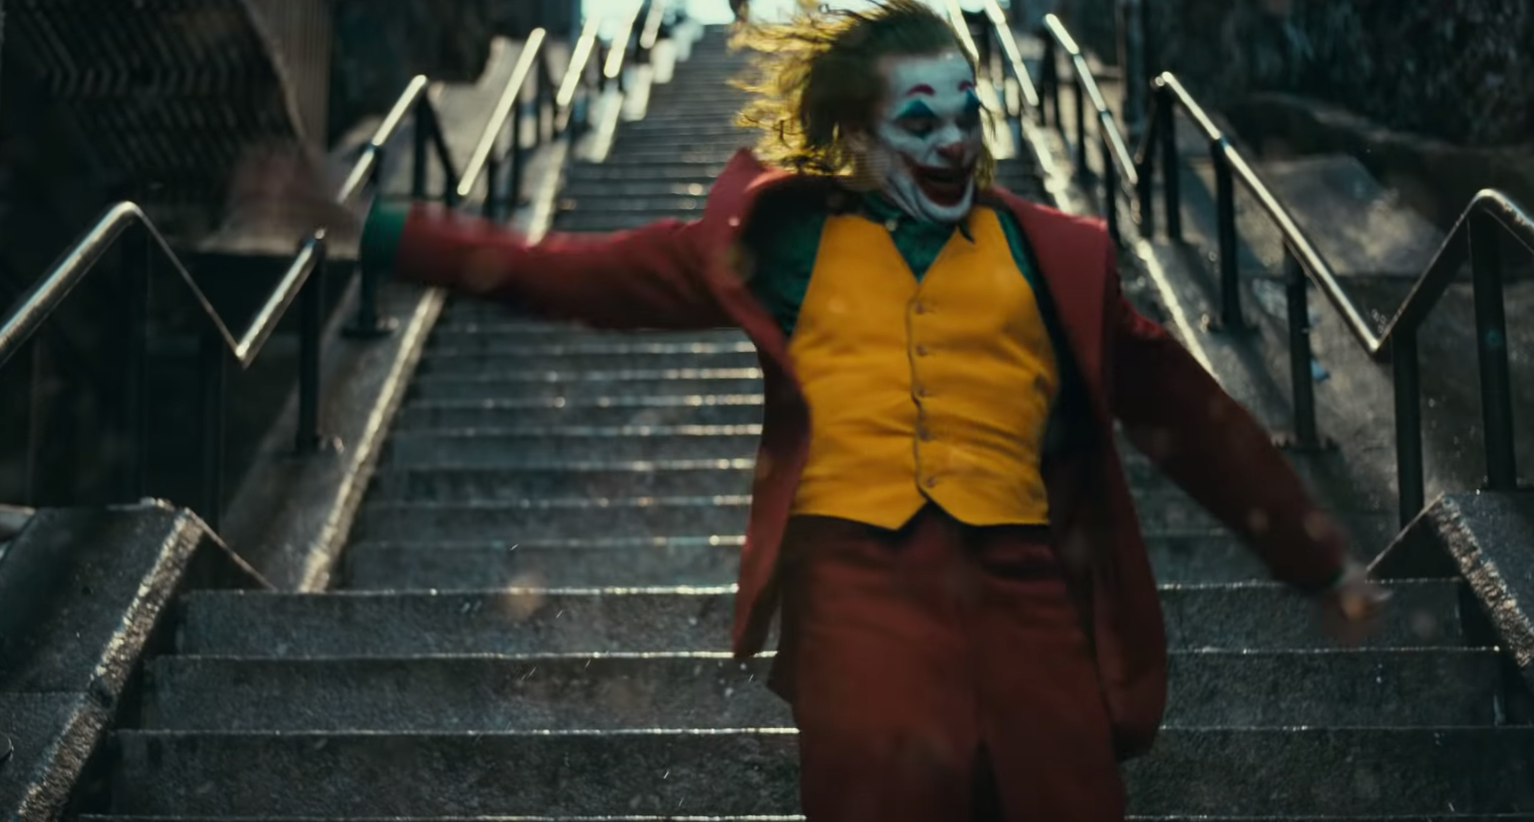 The Joker Stair Scene Controversy Explained